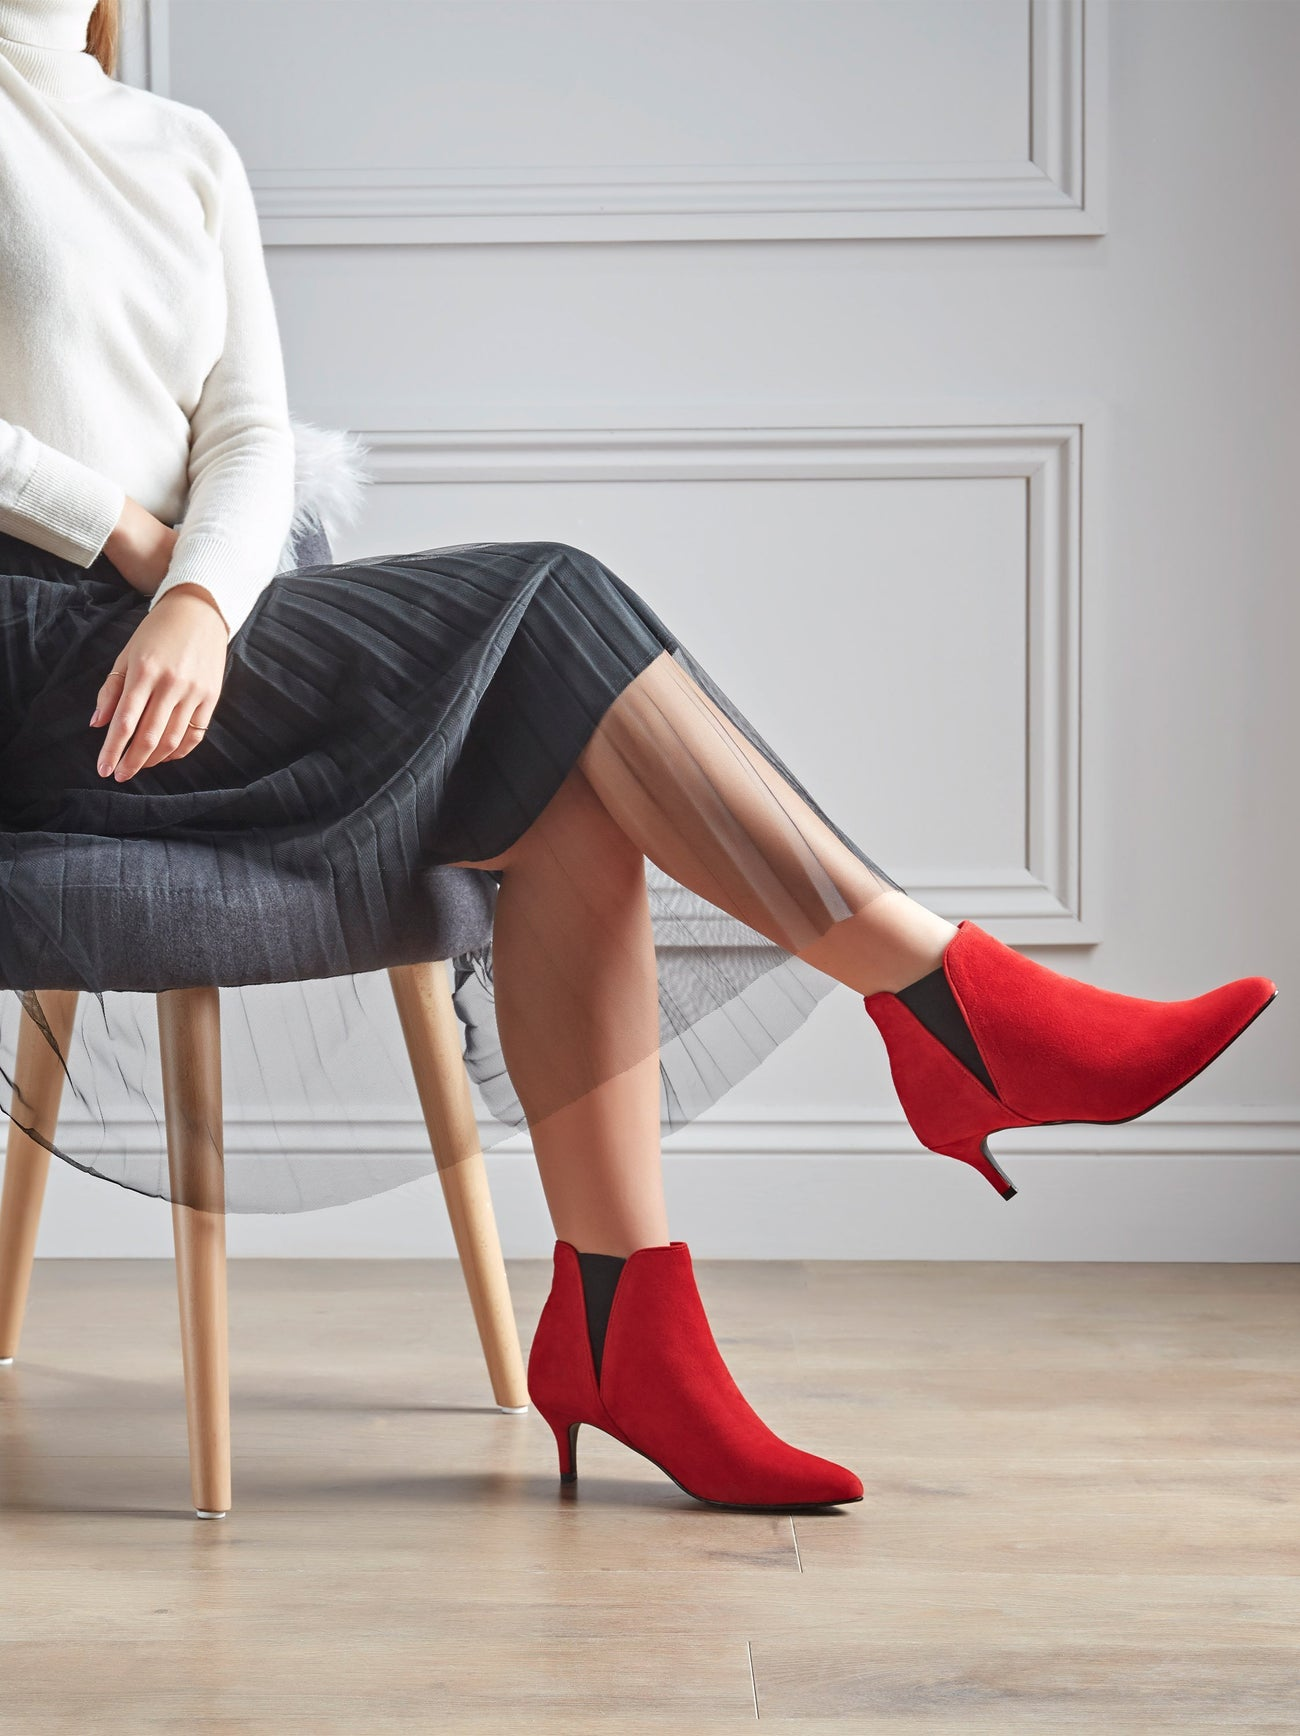 Stylish Somerton; a red kitten heel, Chelsea boot will take you from day to night.